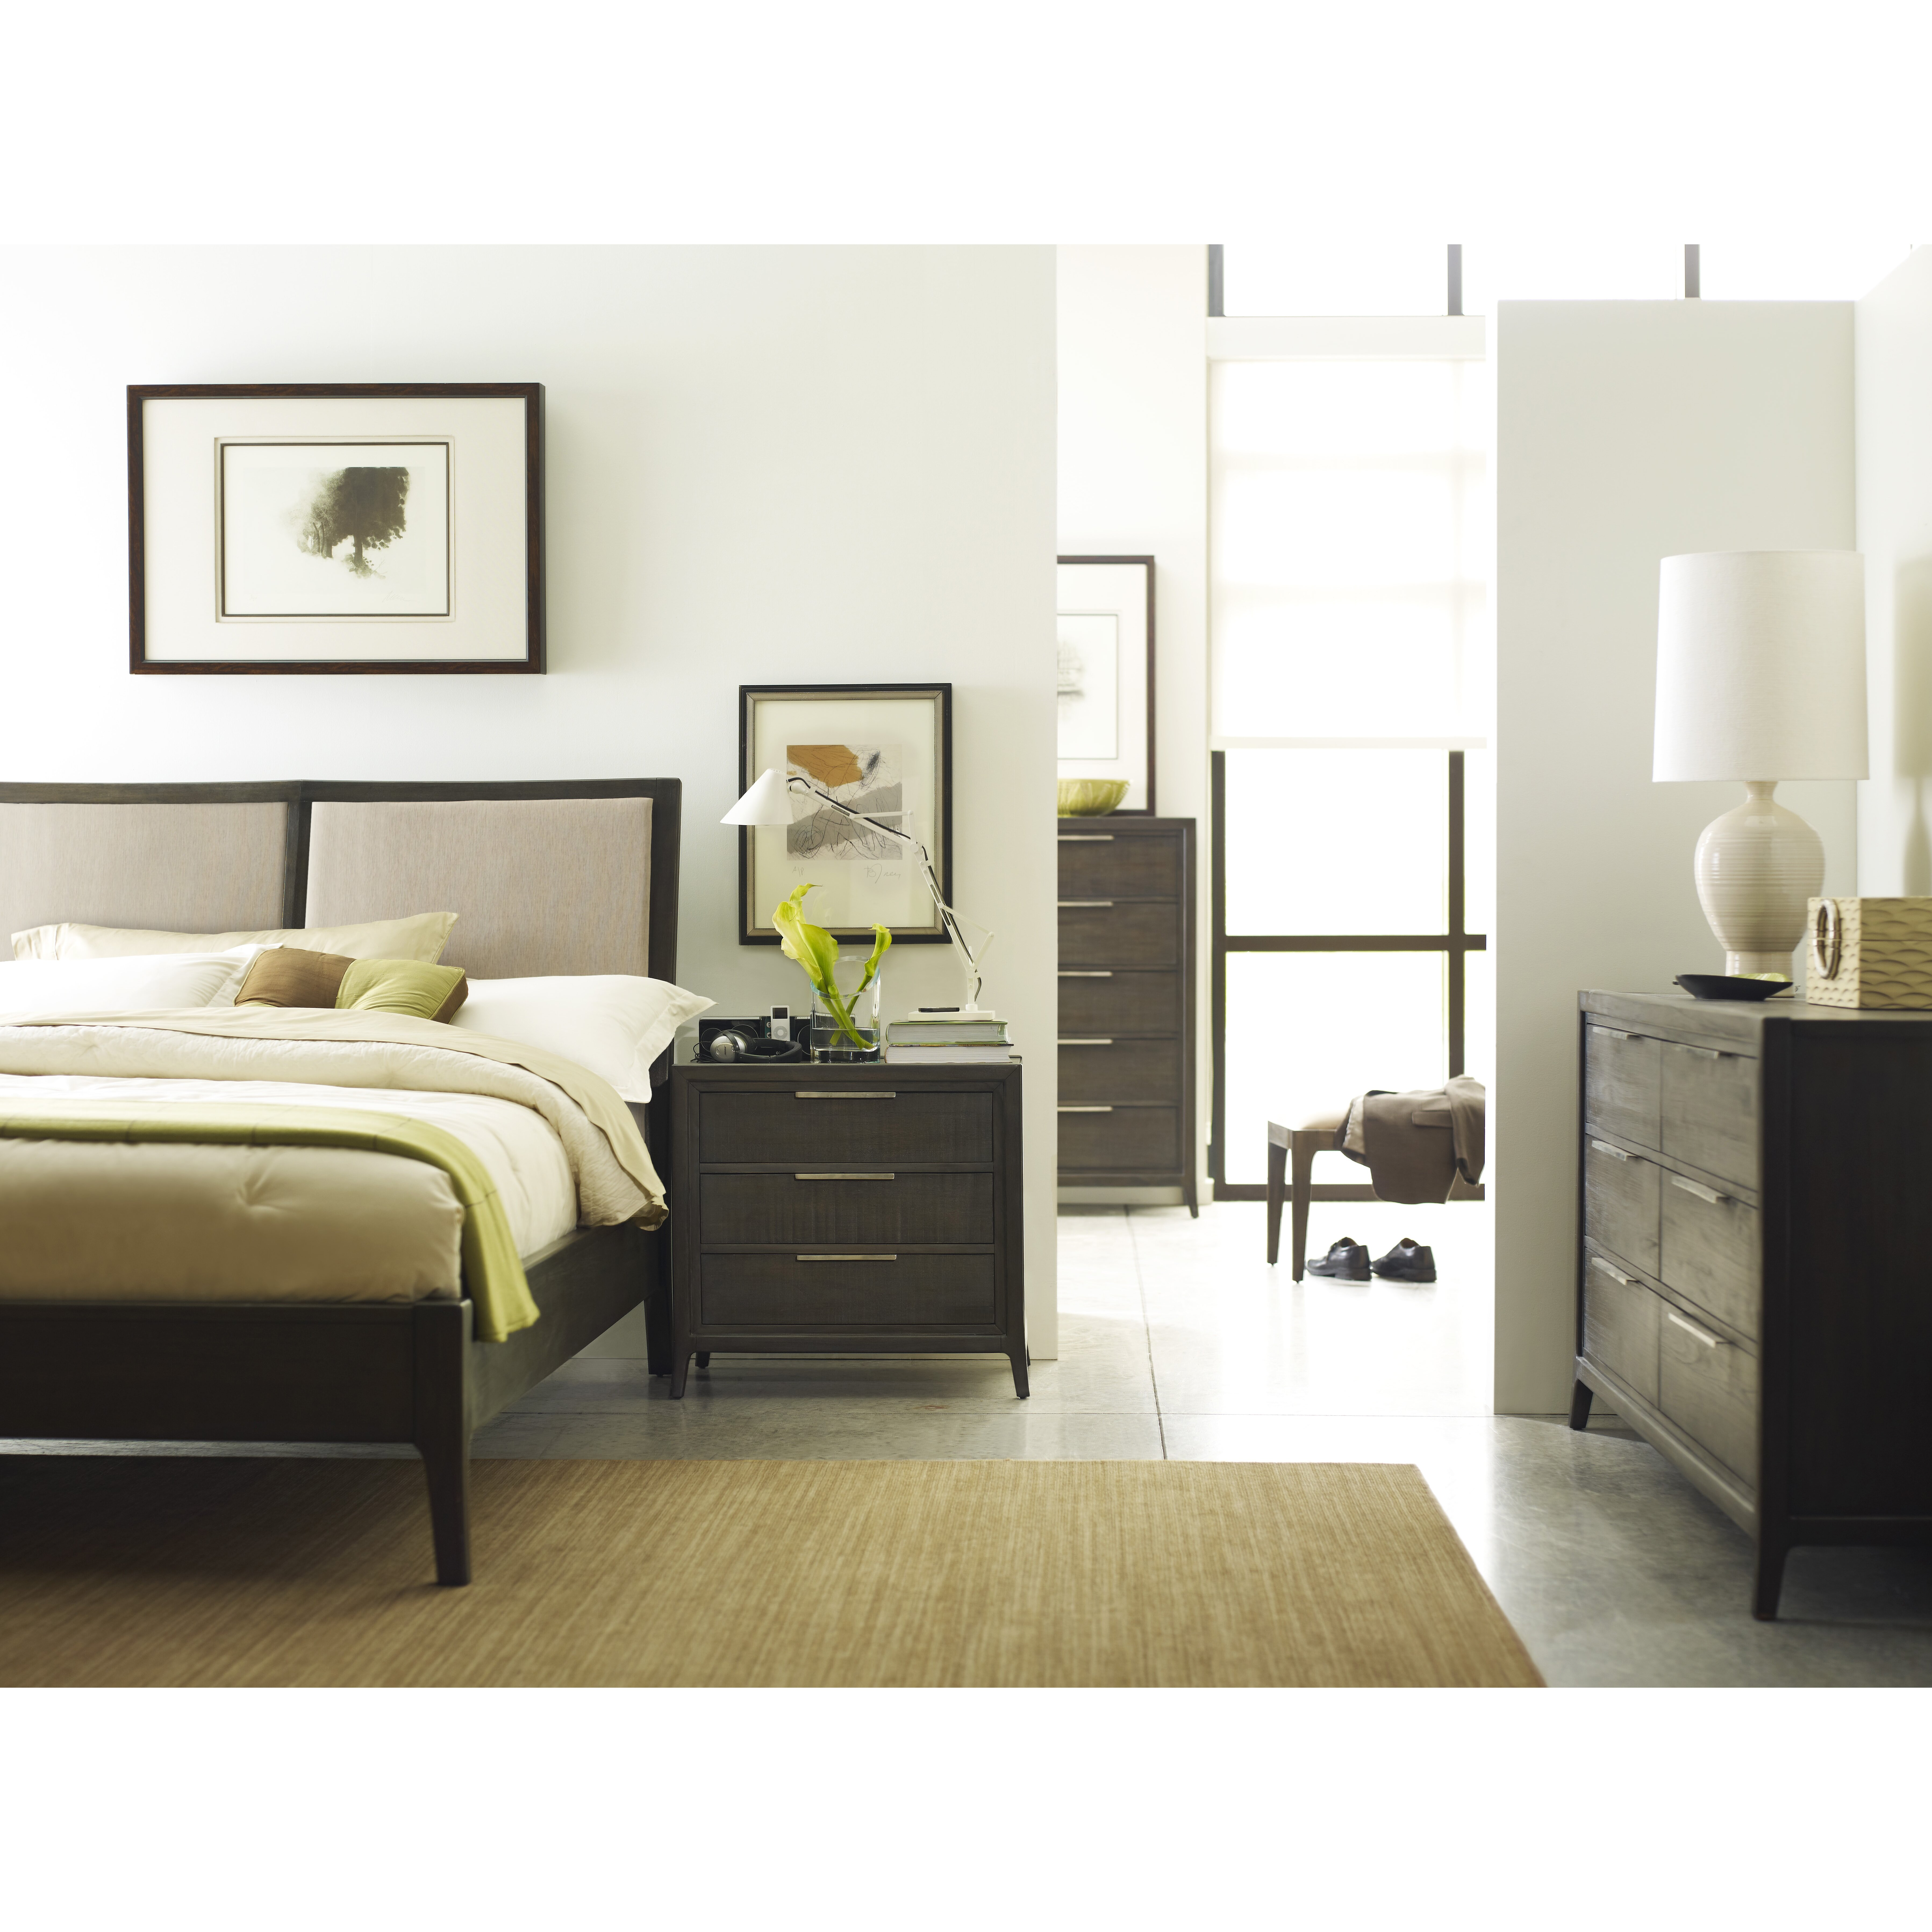 Brownstonefurniture Messina Panel Customizable Bedroom Set